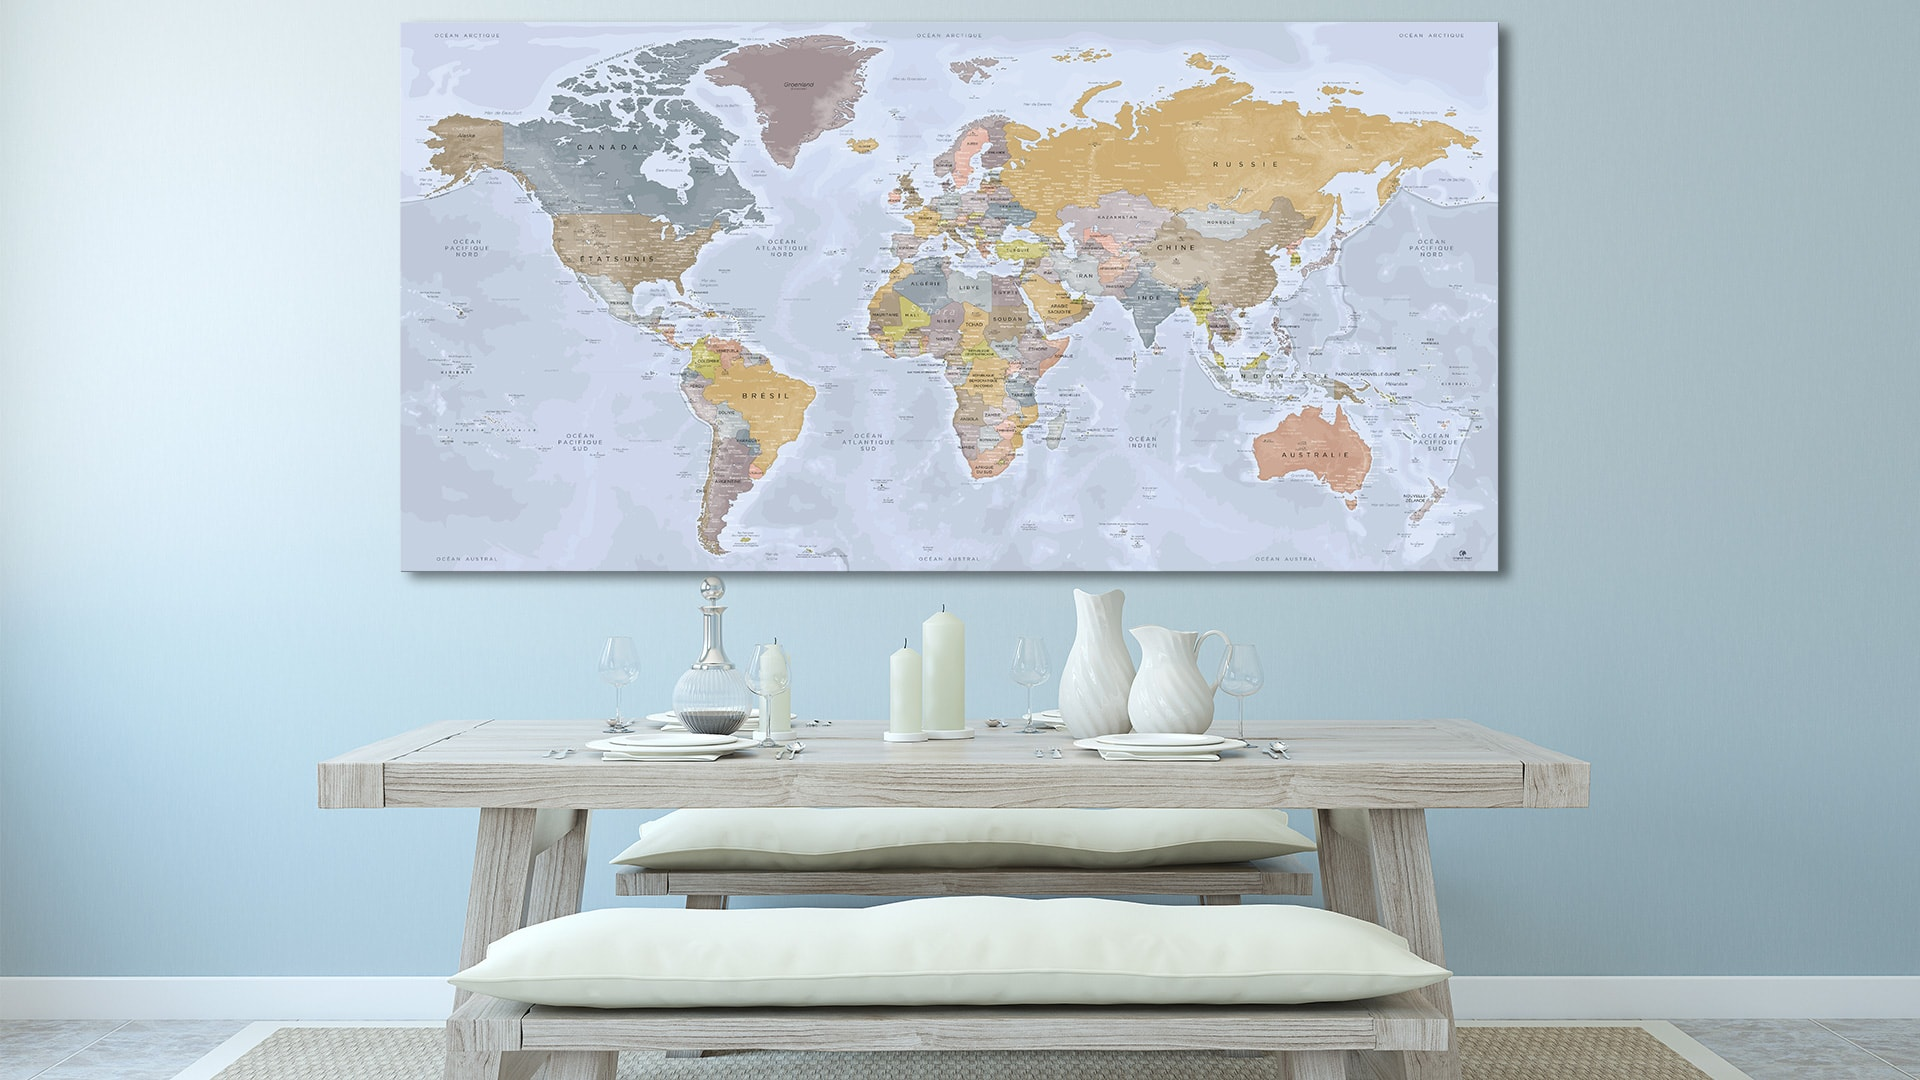 carte du monde angkor original map orignal map mappemonde. Black Bedroom Furniture Sets. Home Design Ideas